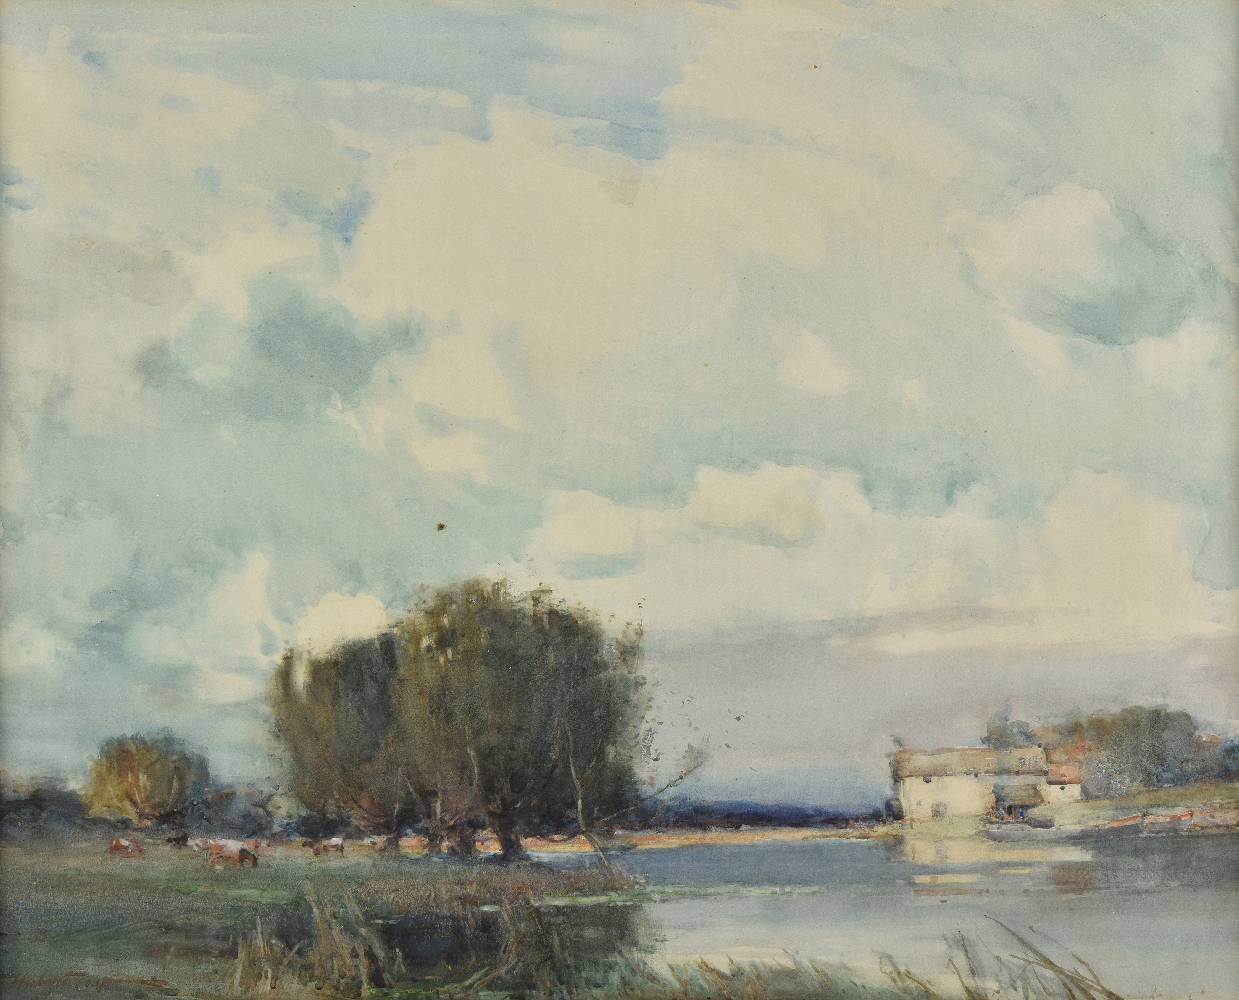 Lot 59 - *@Coop (Hubert, 1872-1953). River Landscape, East Anglia, watercolour heightened with touches of